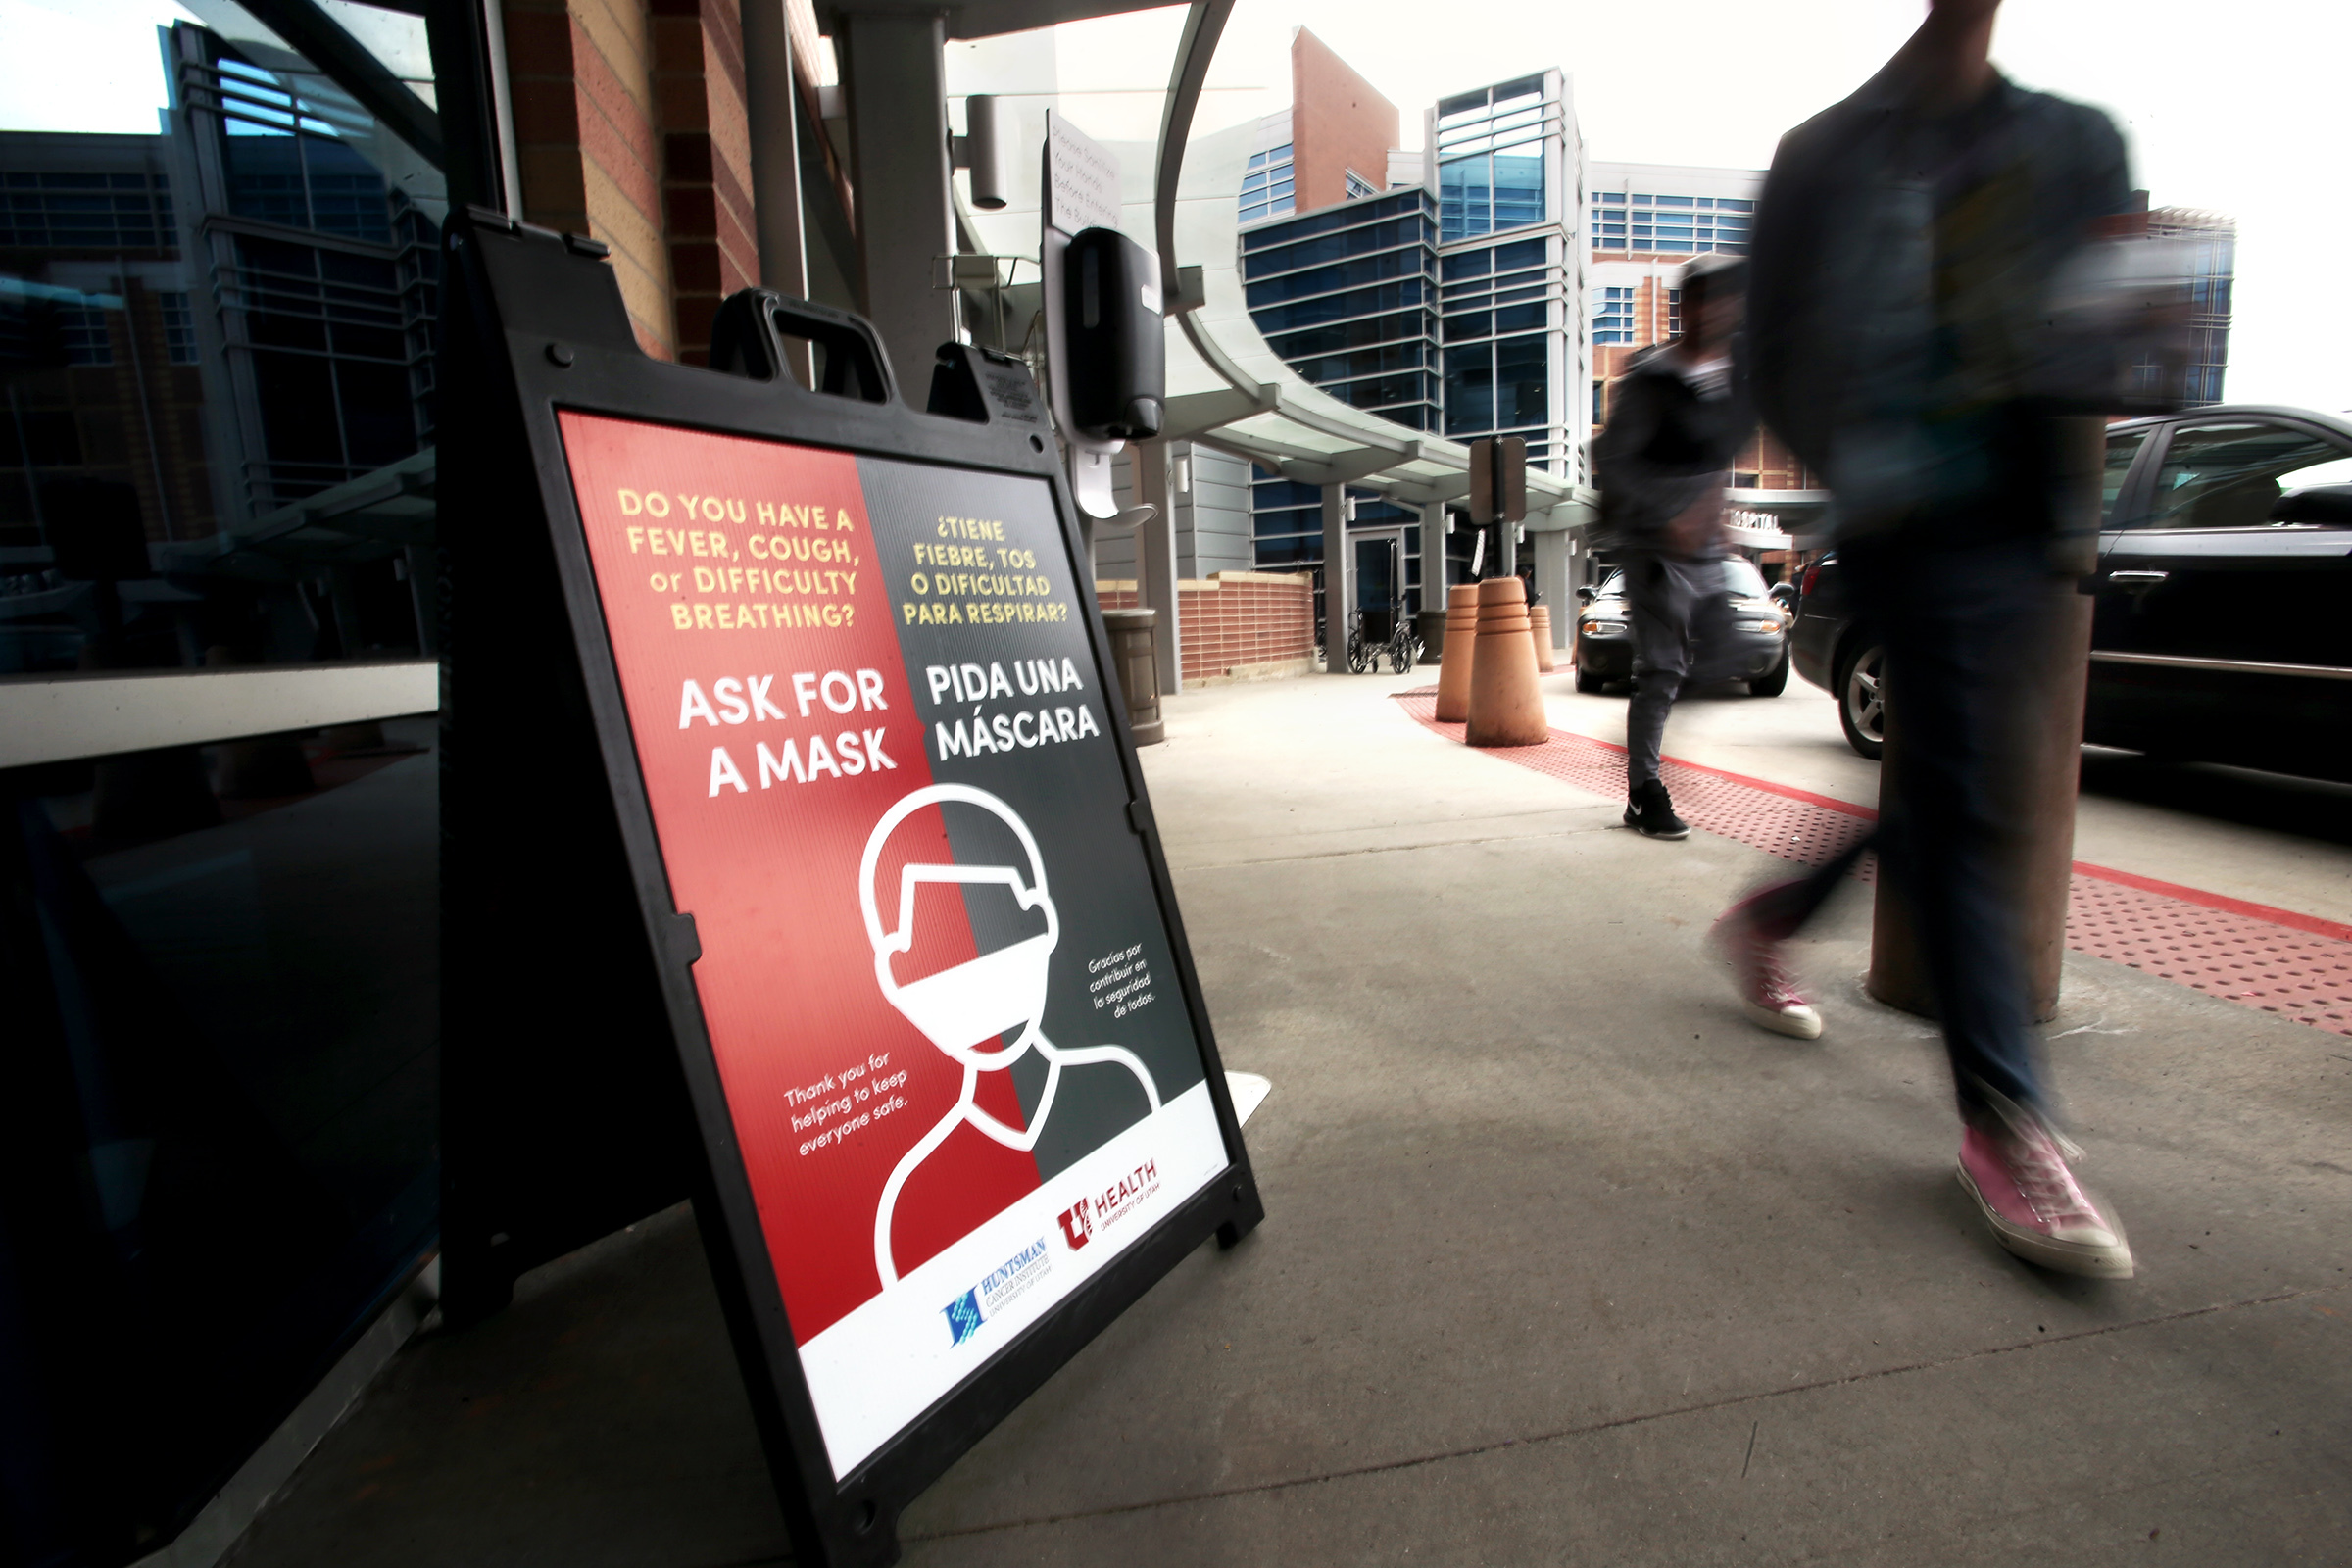 Visitors to the 犹他大学 Hospital in Salt Lake City walk past signs offering information about masks for those who are experiencing fever, cough or difficulty breathing on Monday, March 9, 2020. The hospital is preparing for potential COVID-19 patients.